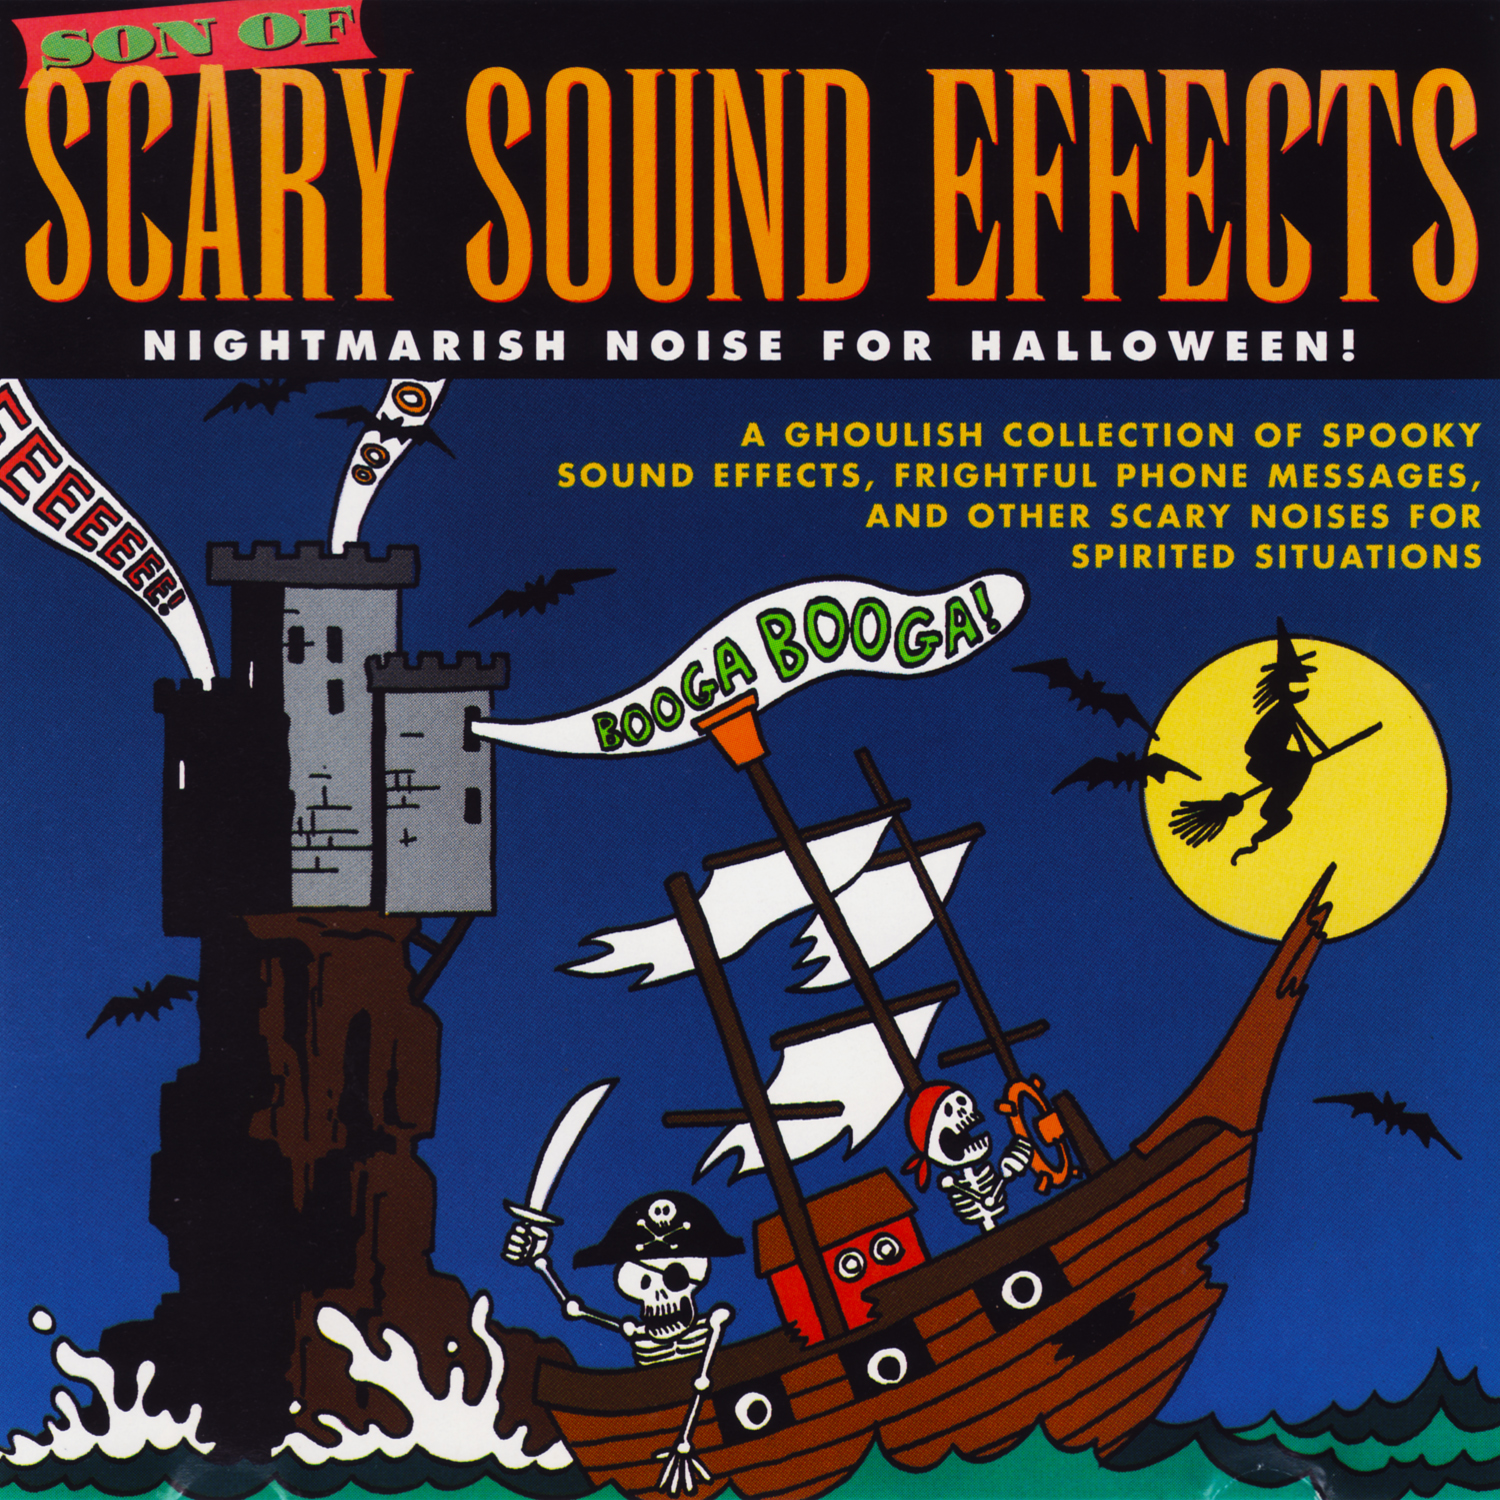 scary sounds of halloween blog son of scary sound effects